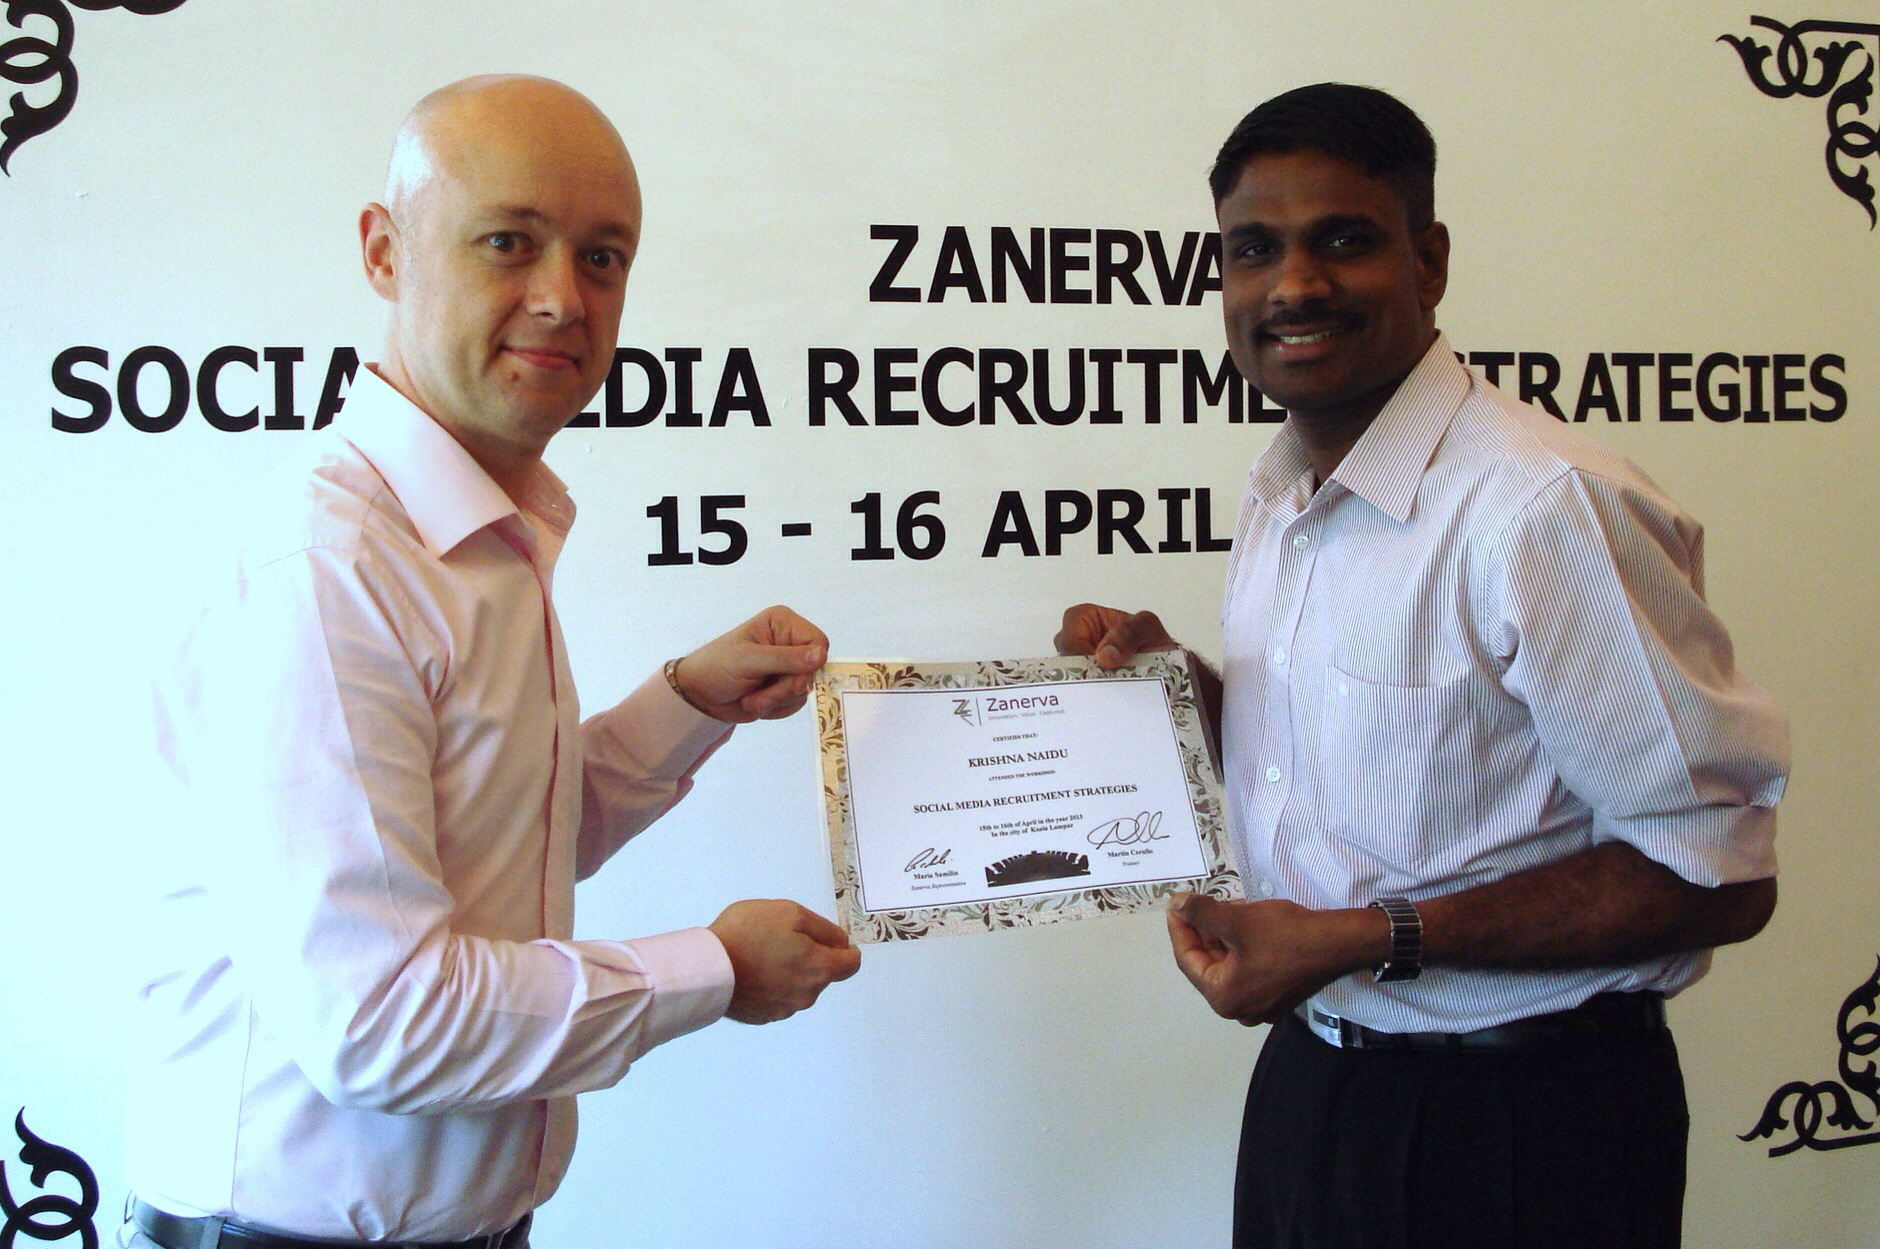 Krishna Naidu, Head of Rectuitment at Affin Bank  receiving his certificate of participation for attending the Social Media Recruitment Strategies Workshop in Kuala Lumpur